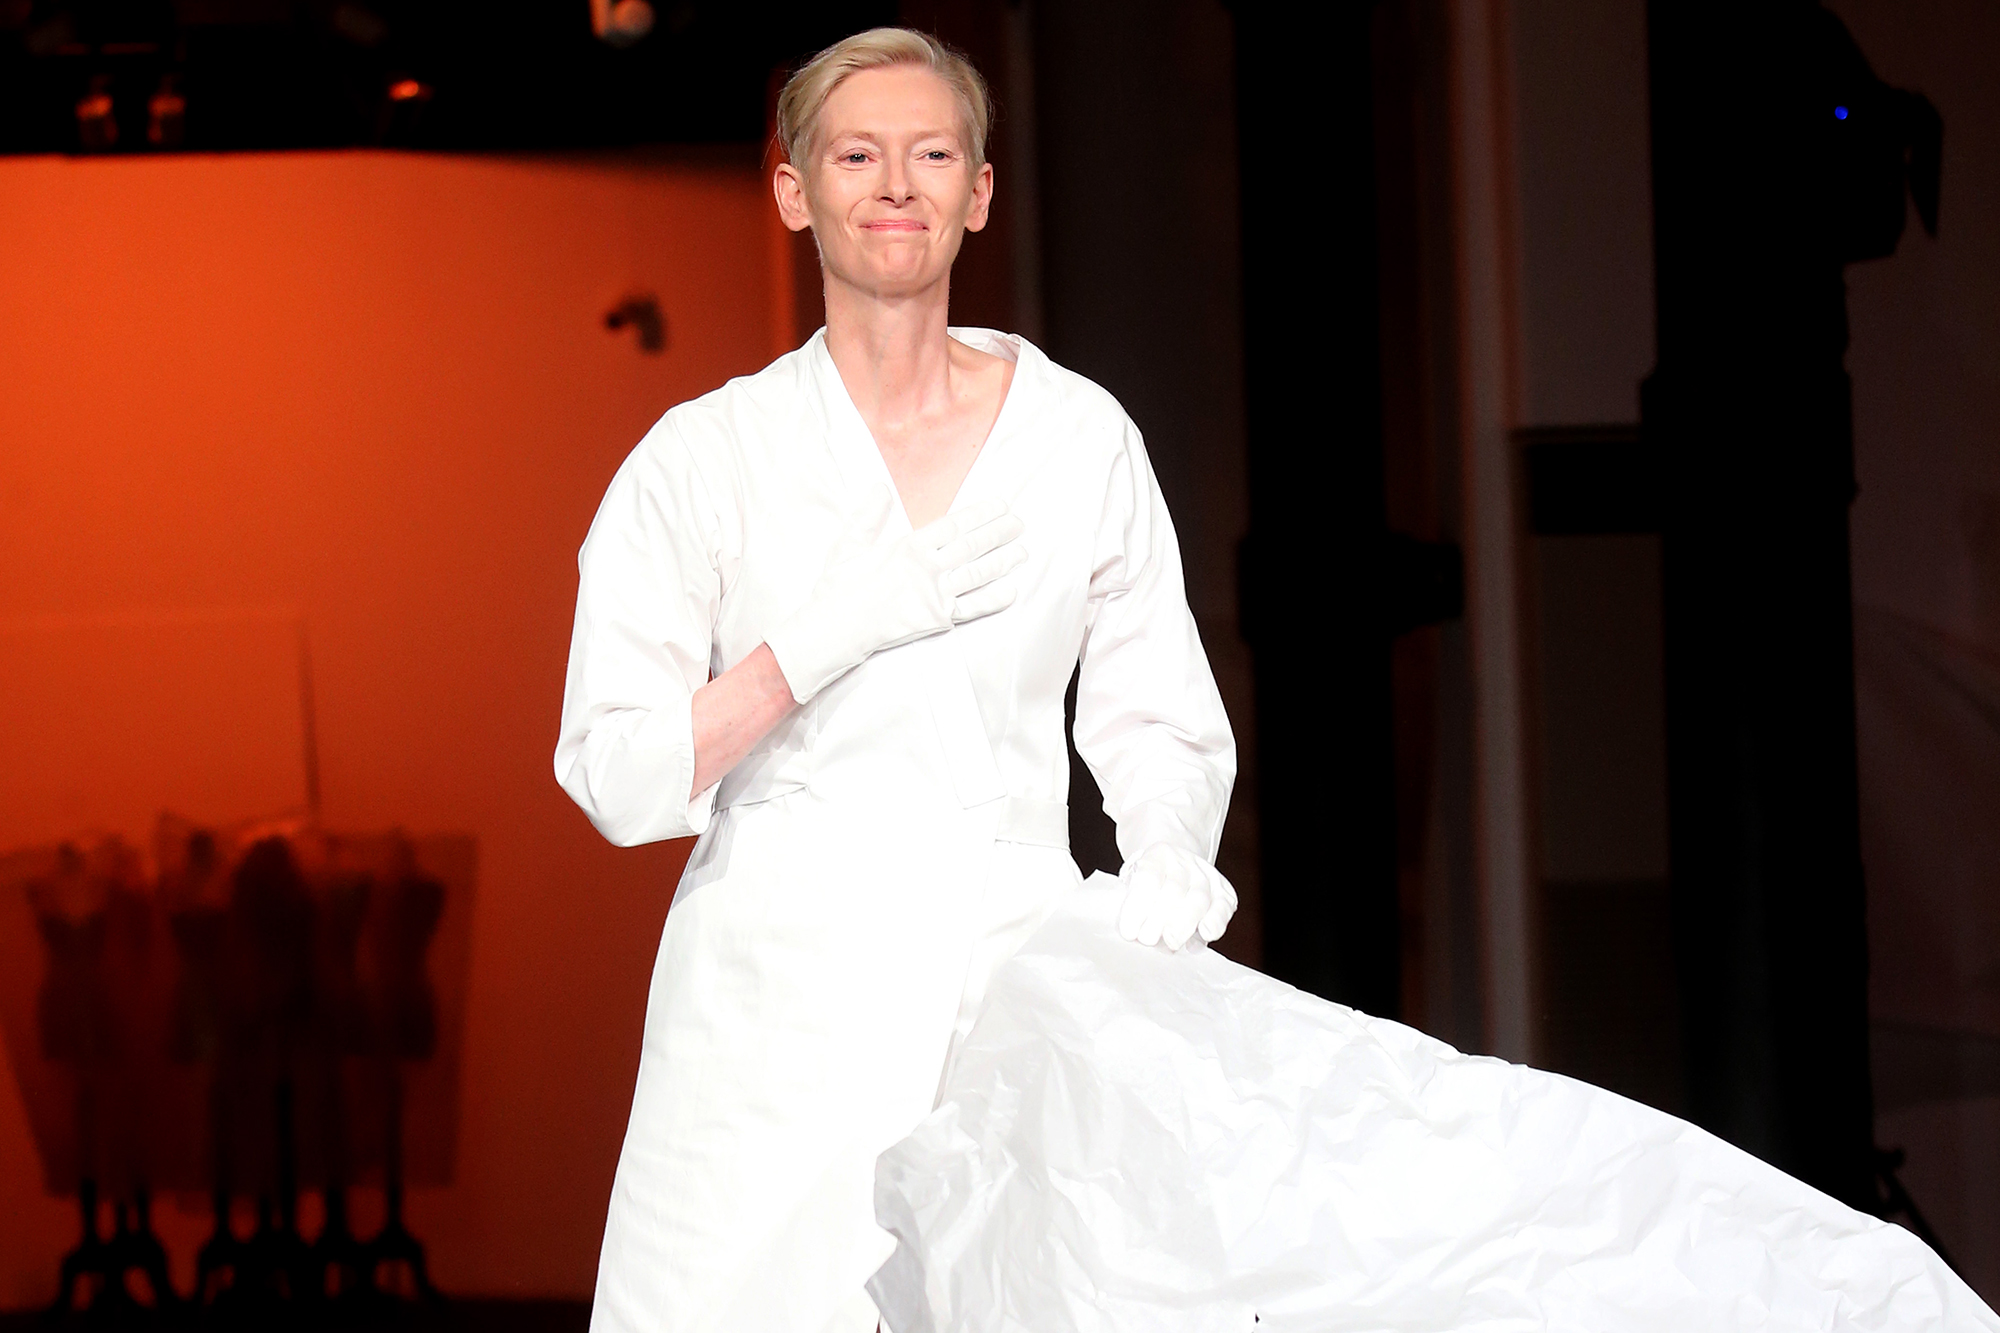 """Model and actress Tilda Swinton, wearing an original costume for Pier Paolo Pasolini's film 'Decameron', performs during """"Embodying Pasolini"""" Press Conference at the Mattatoio (Rome's former Slaughterhouse) on June 24, 2021 in Rome, Italy"""